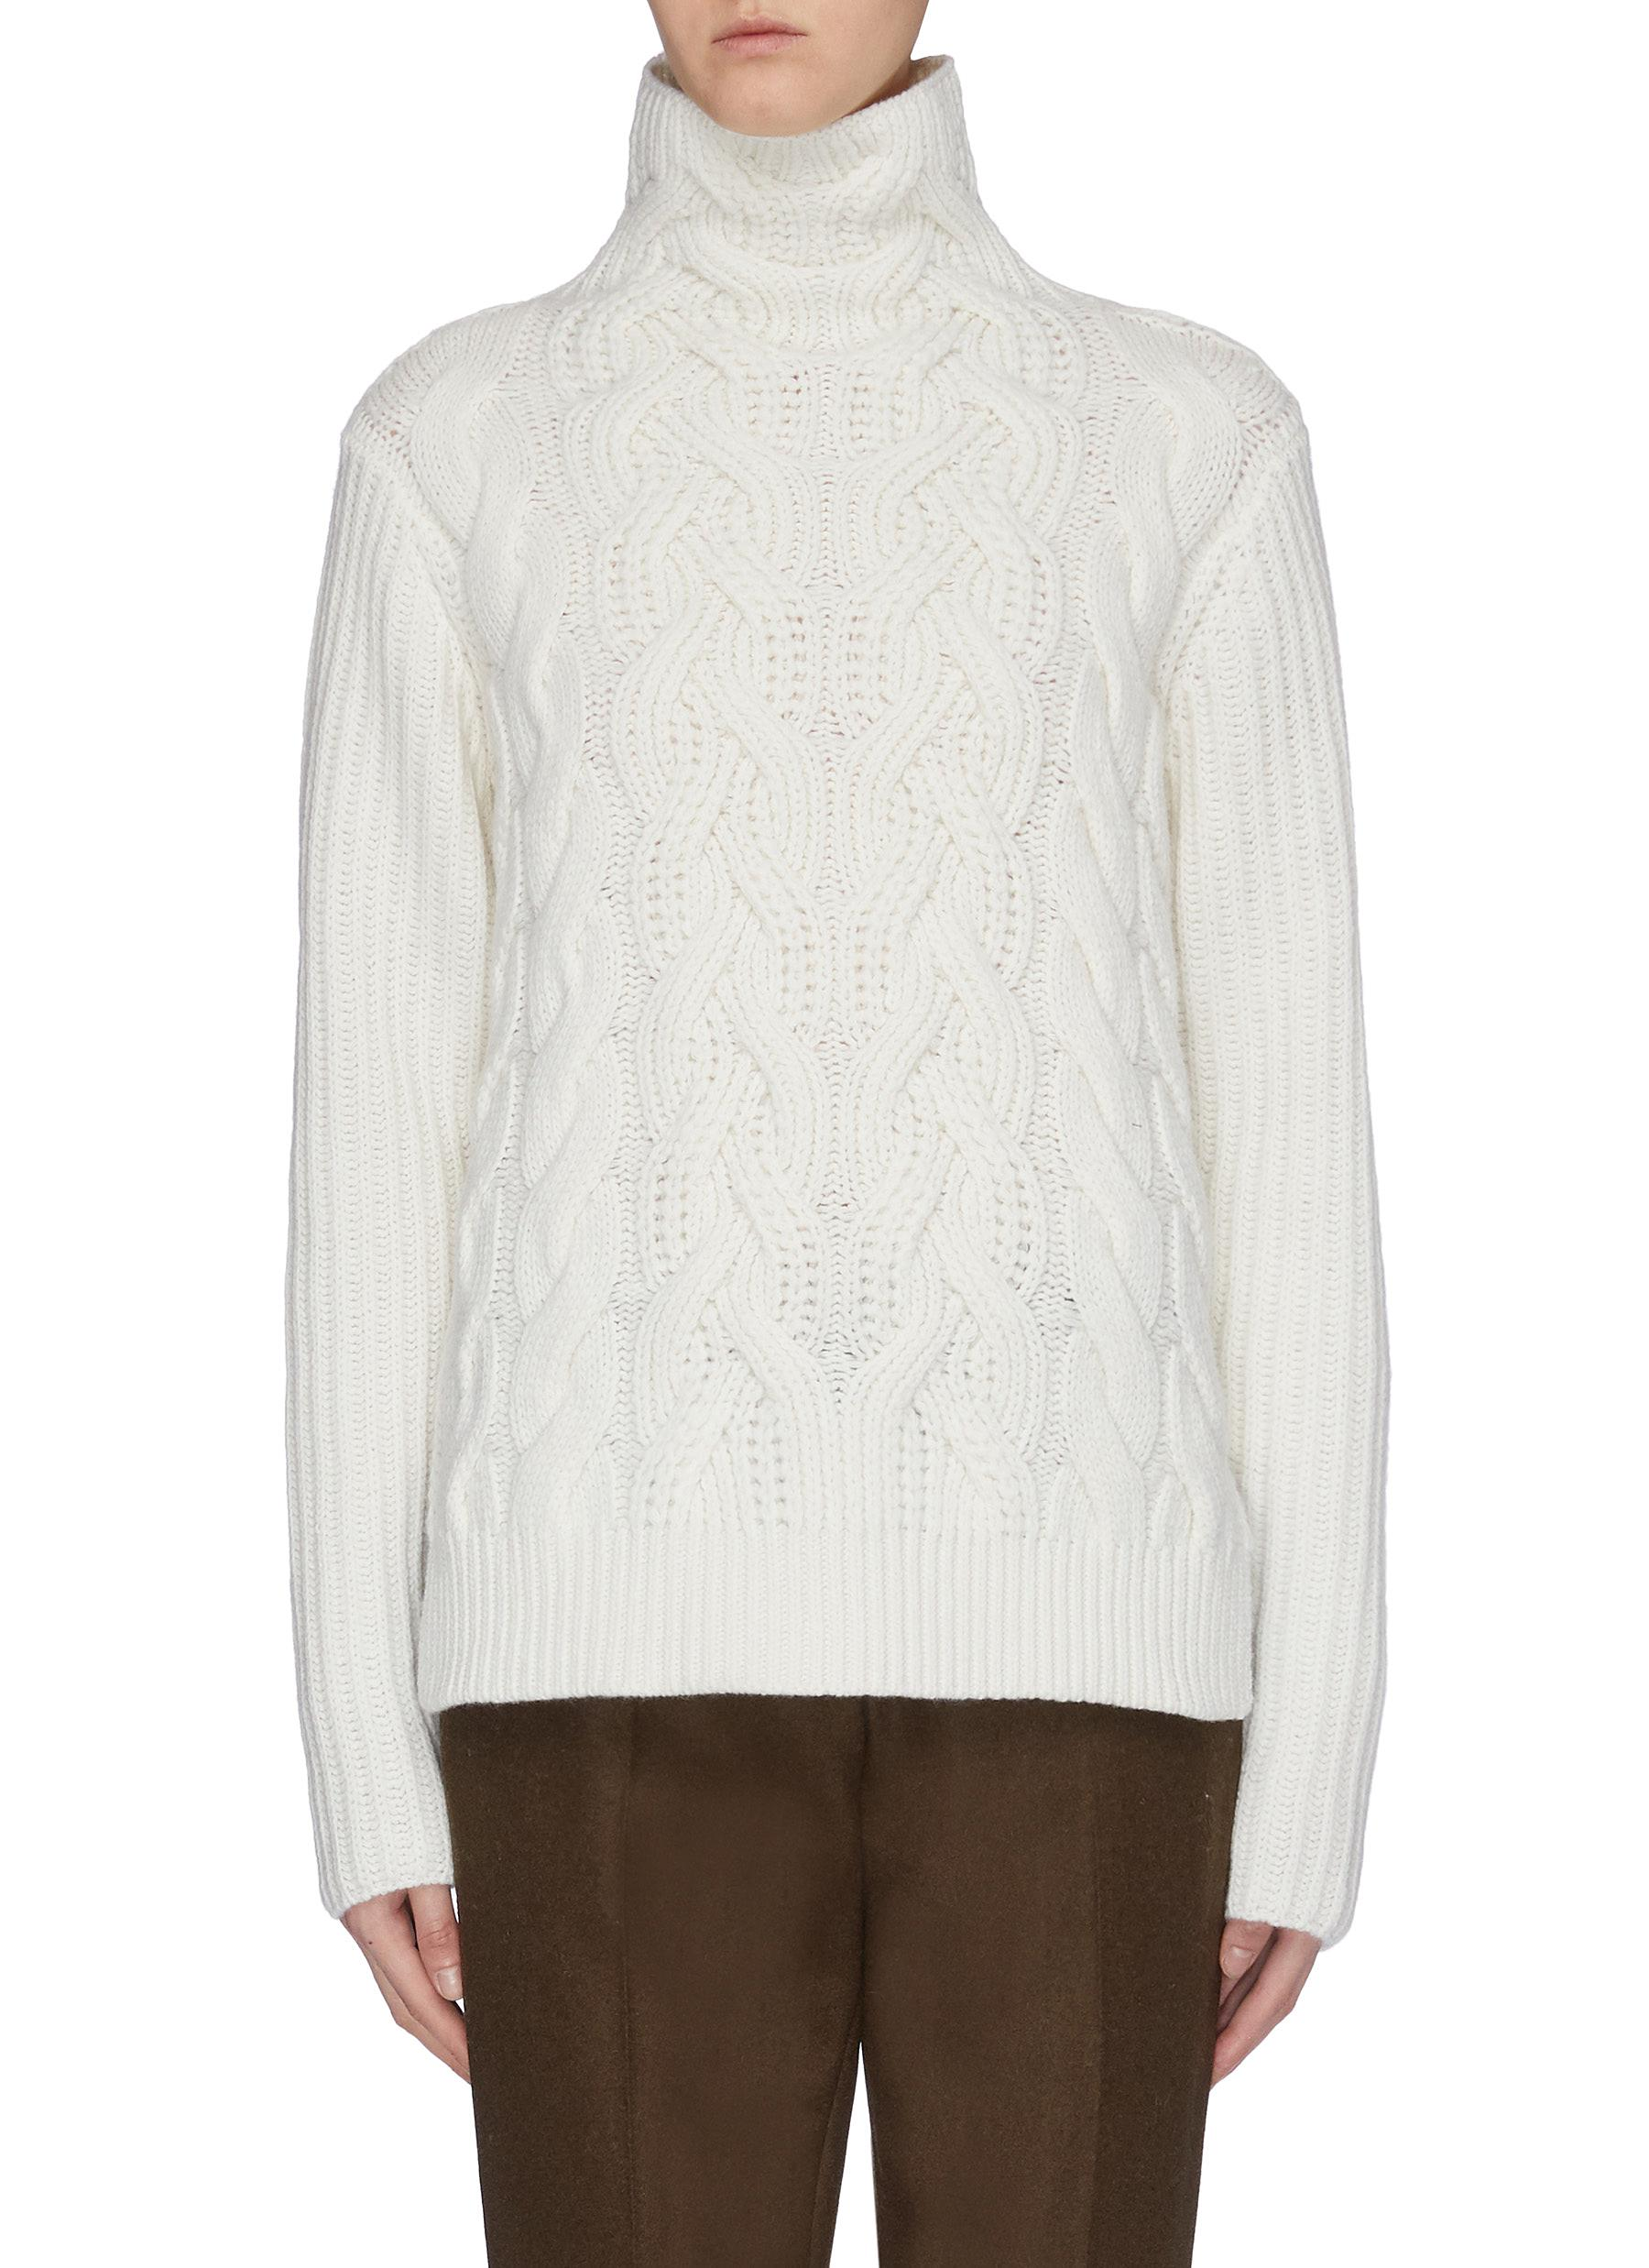 Lambswool cable knit turtleneck sweater by Helmut Lang